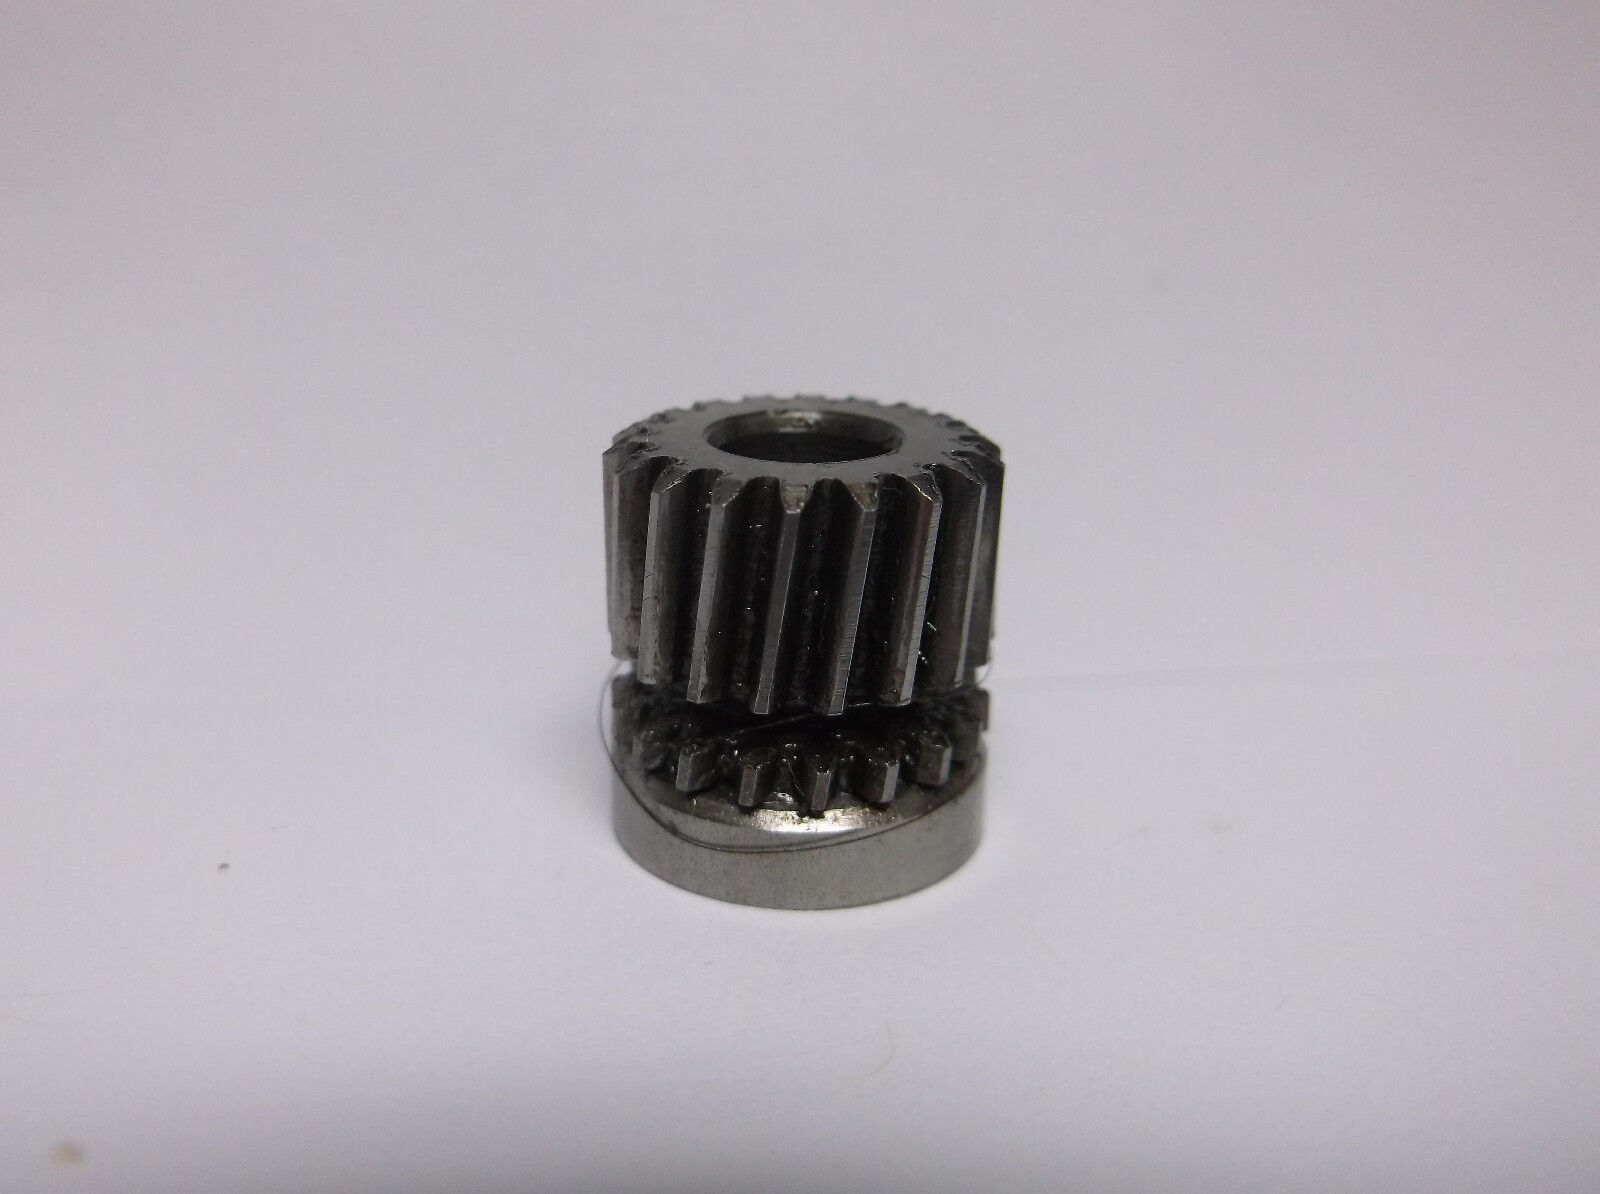 USED NEWELL CONVENTIONAL REEL PART - S 646 3 - Pinion